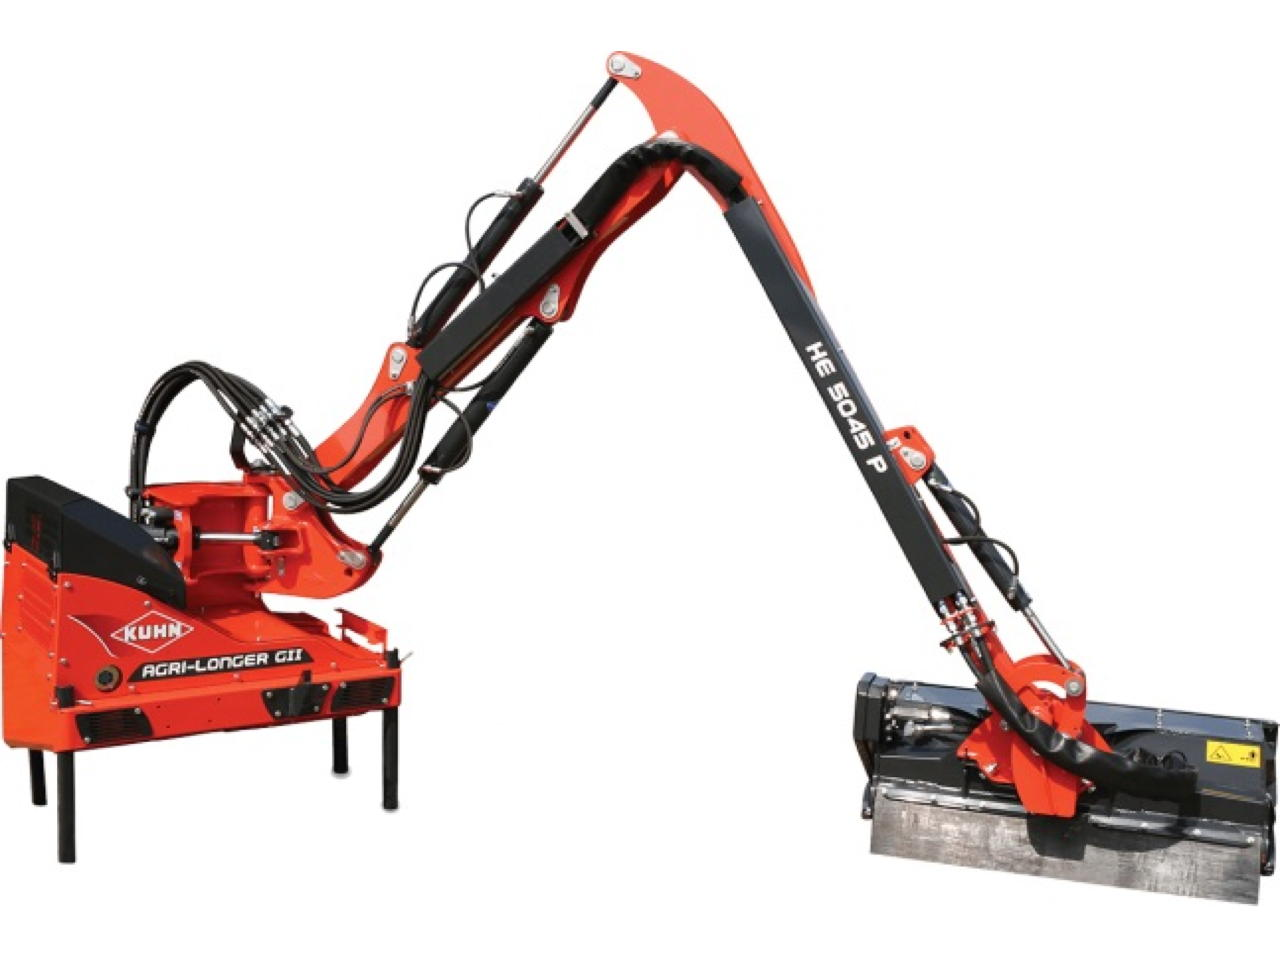 Kuhn Agri-Longer GII con perno di sicurezza Agri Longer GII 6045 P TD